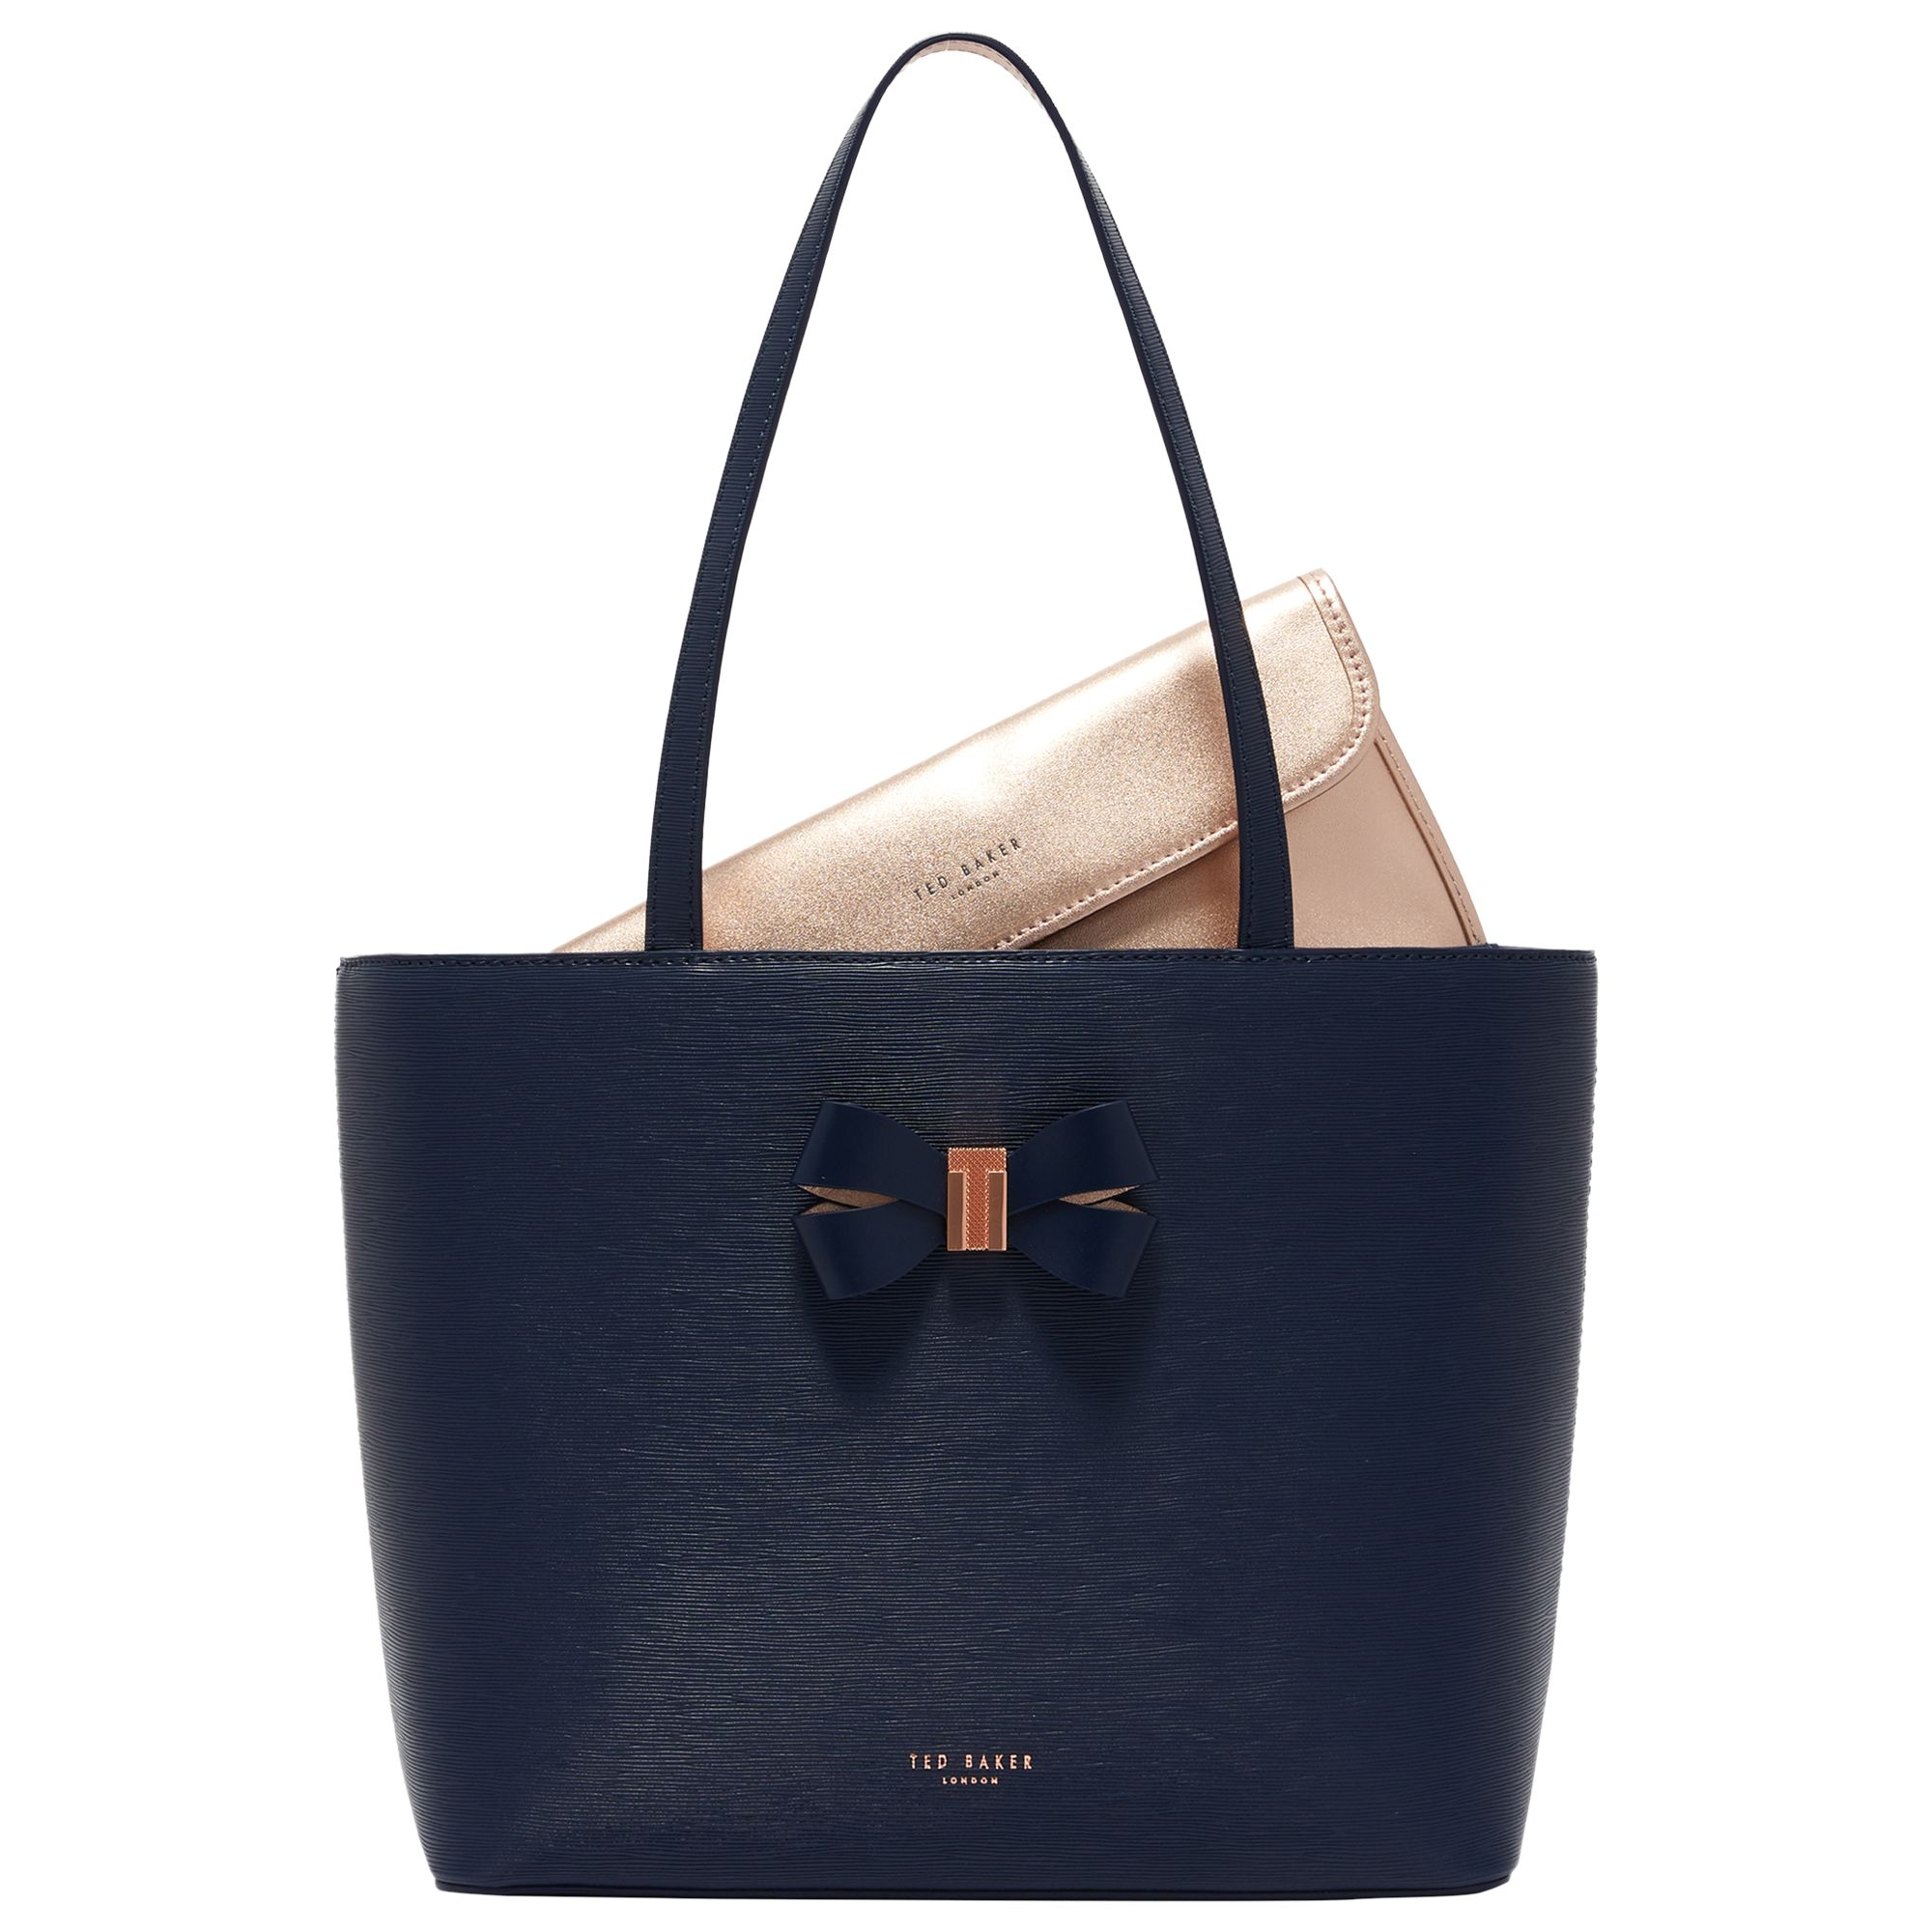 6a2436dac Ted Baker Bowmisa Leather Small Shopper Bag at John Lewis   Partners